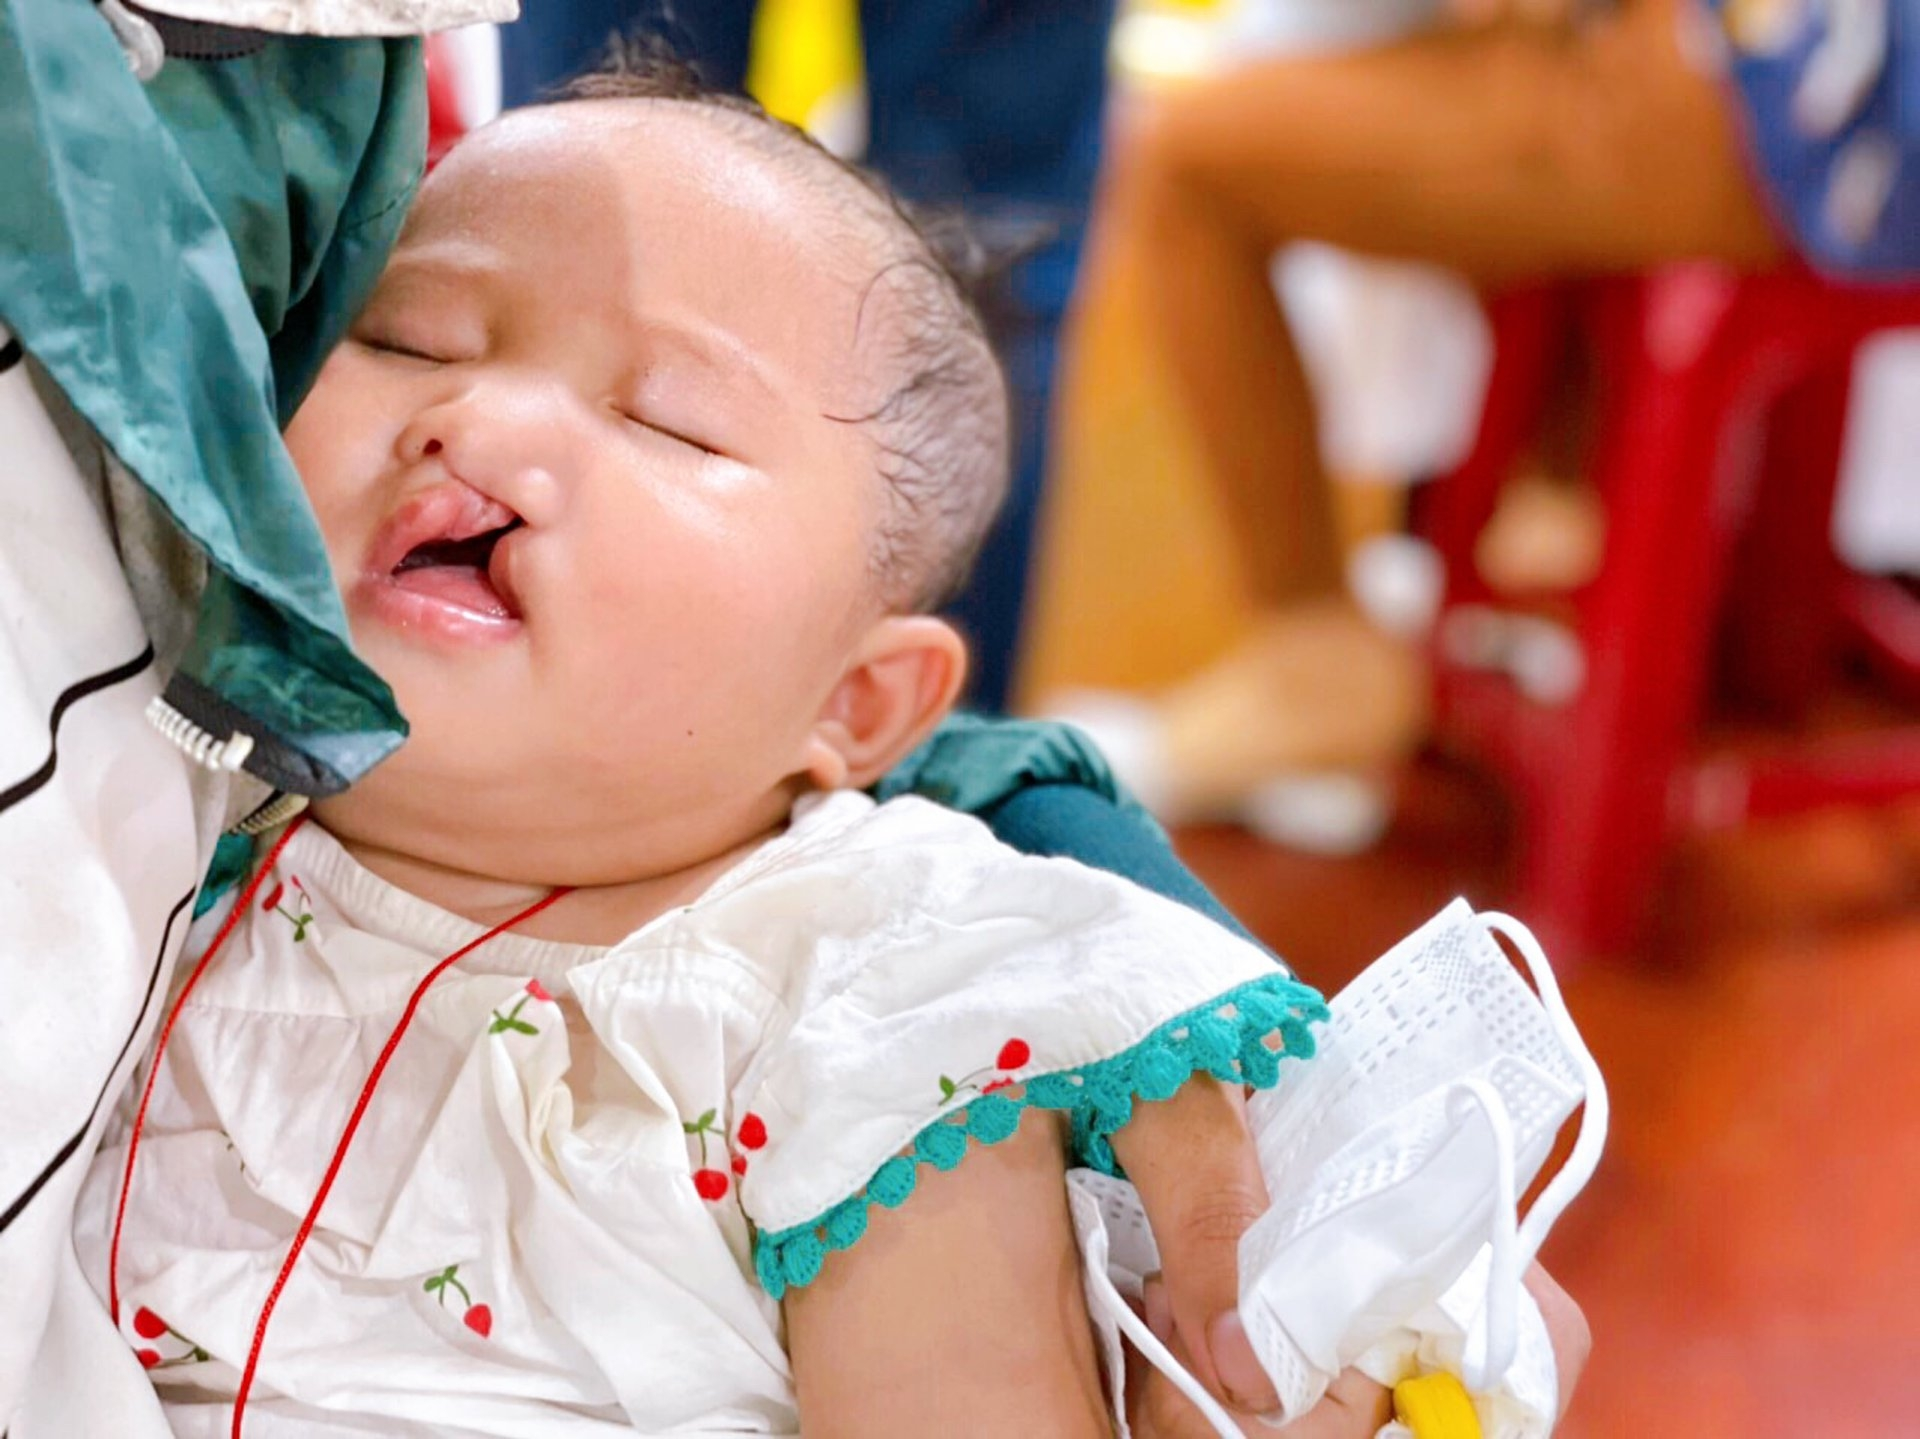 Operation Smile continues bringing smiles for Vietnam's child patients